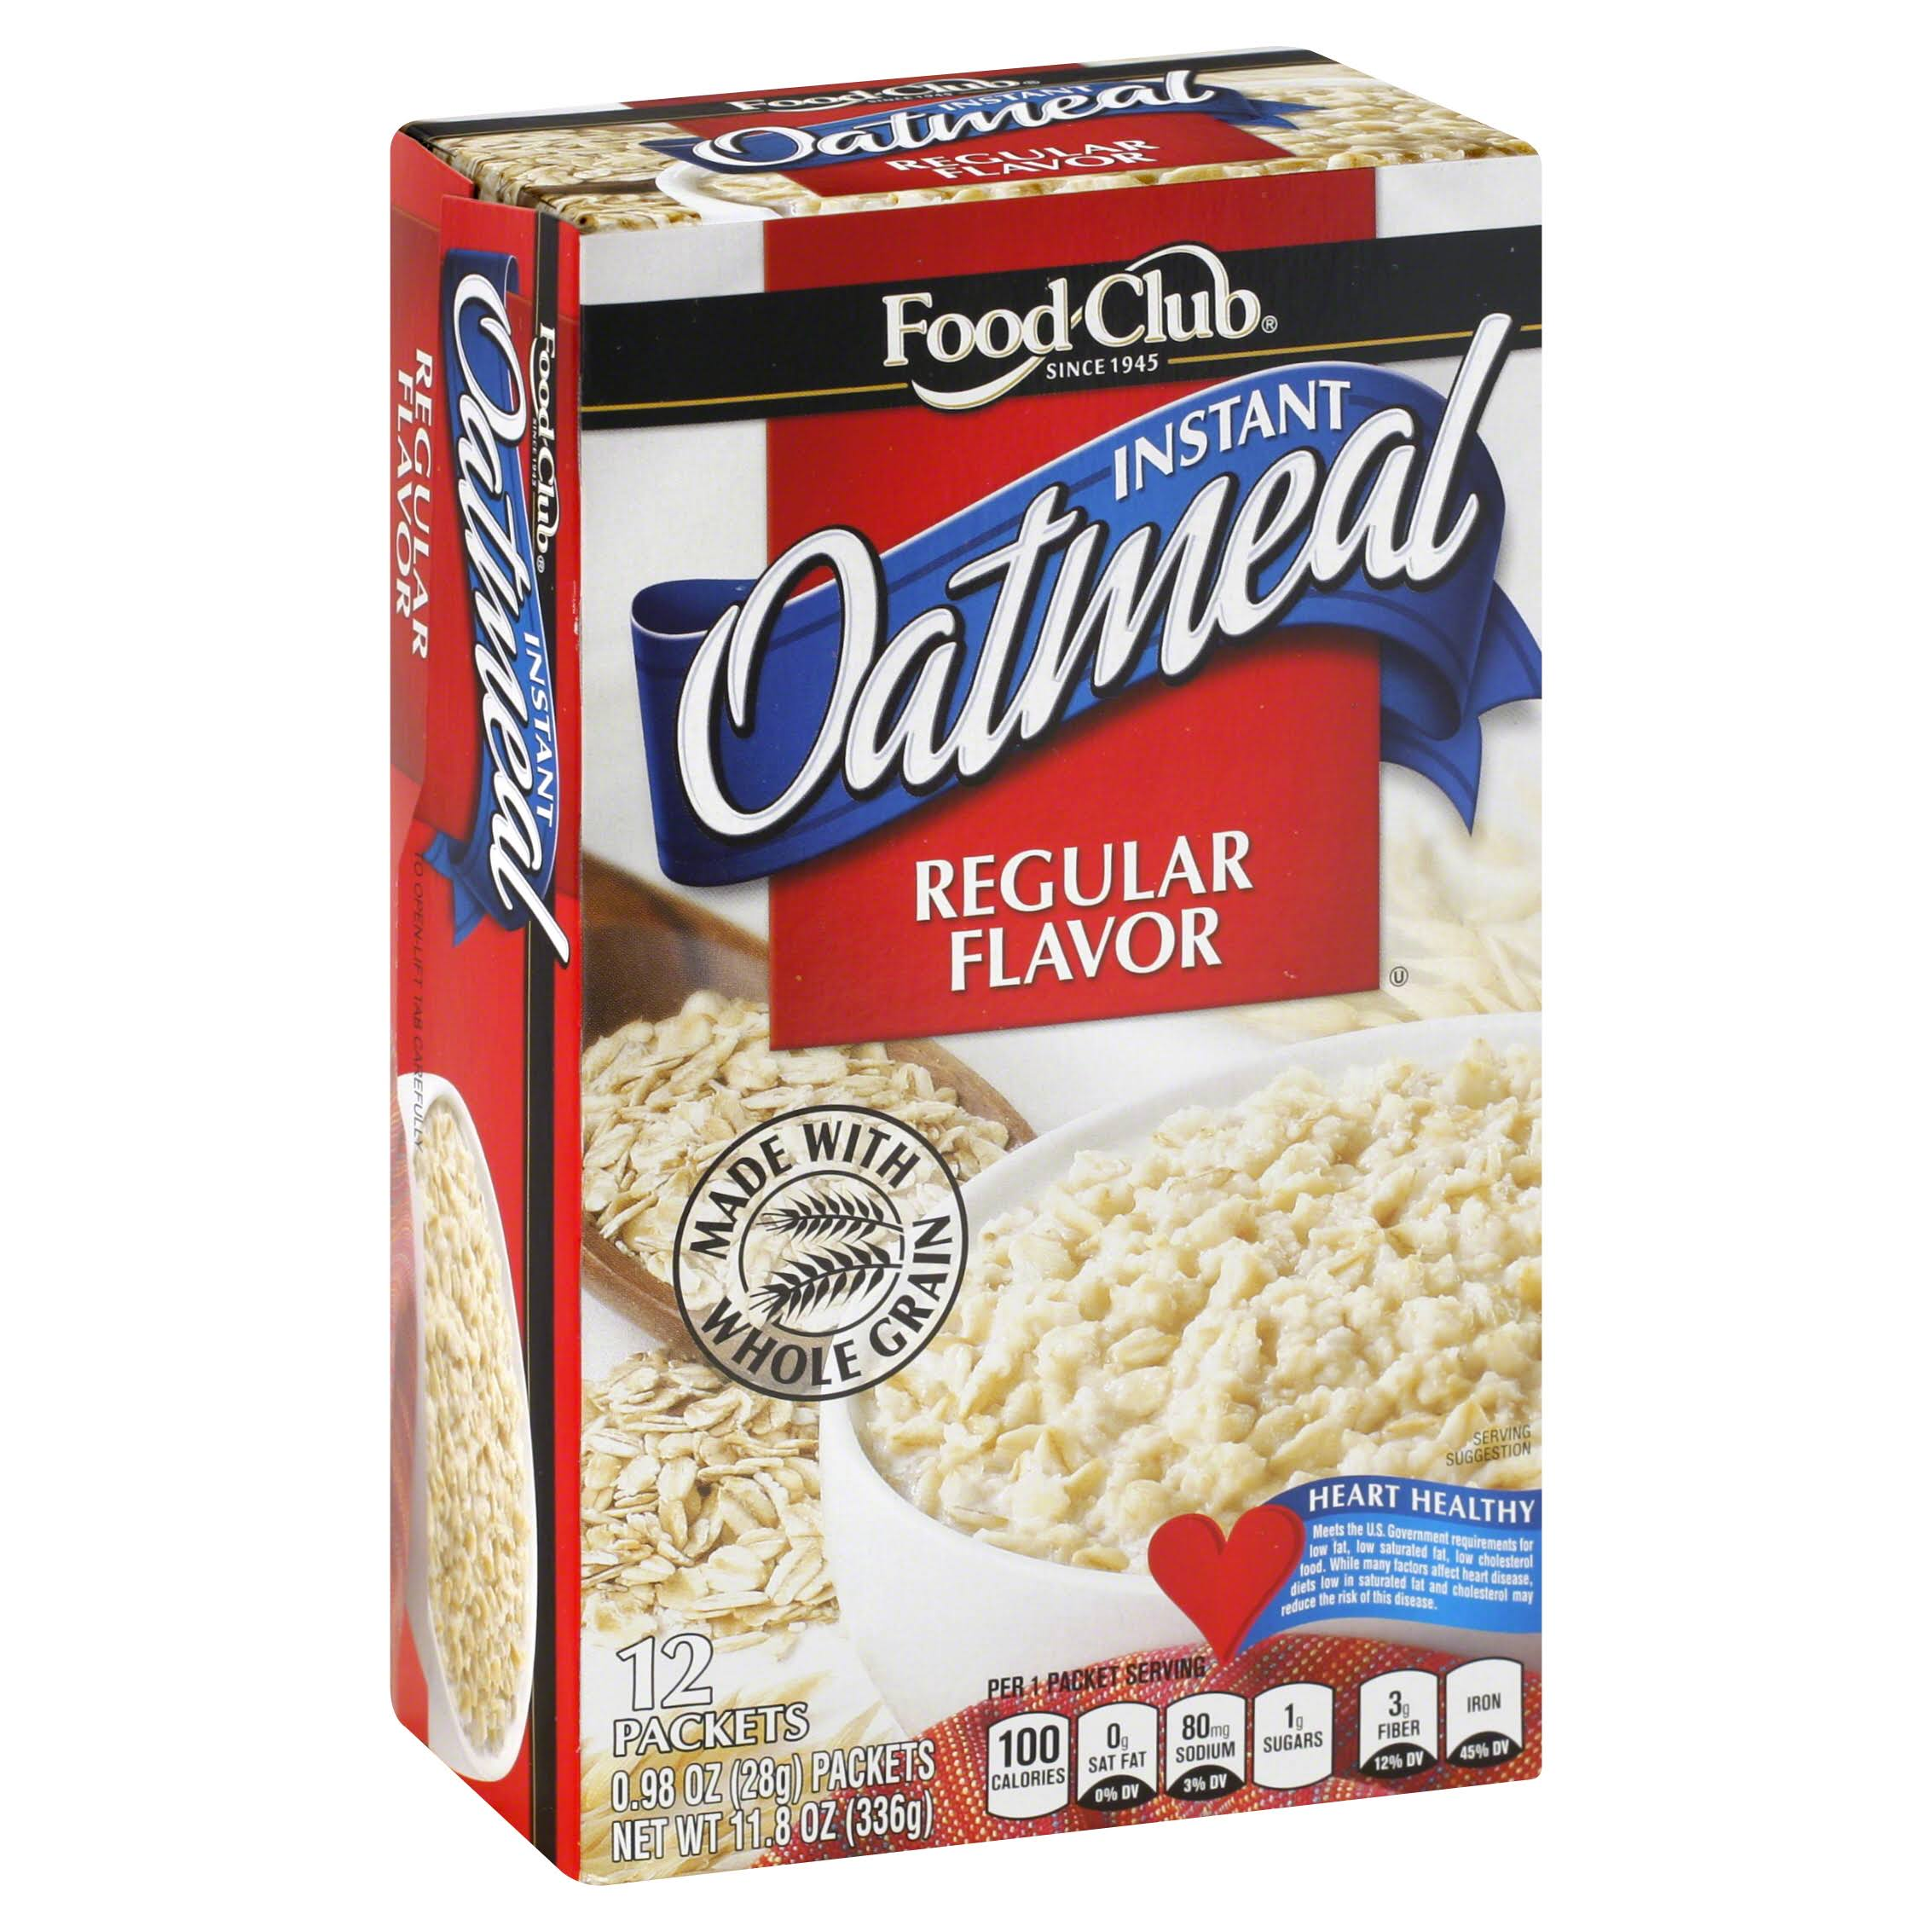 Food Club Oatmeal, Instant, Regular Flavor - 12 pack, 0.98 oz packets